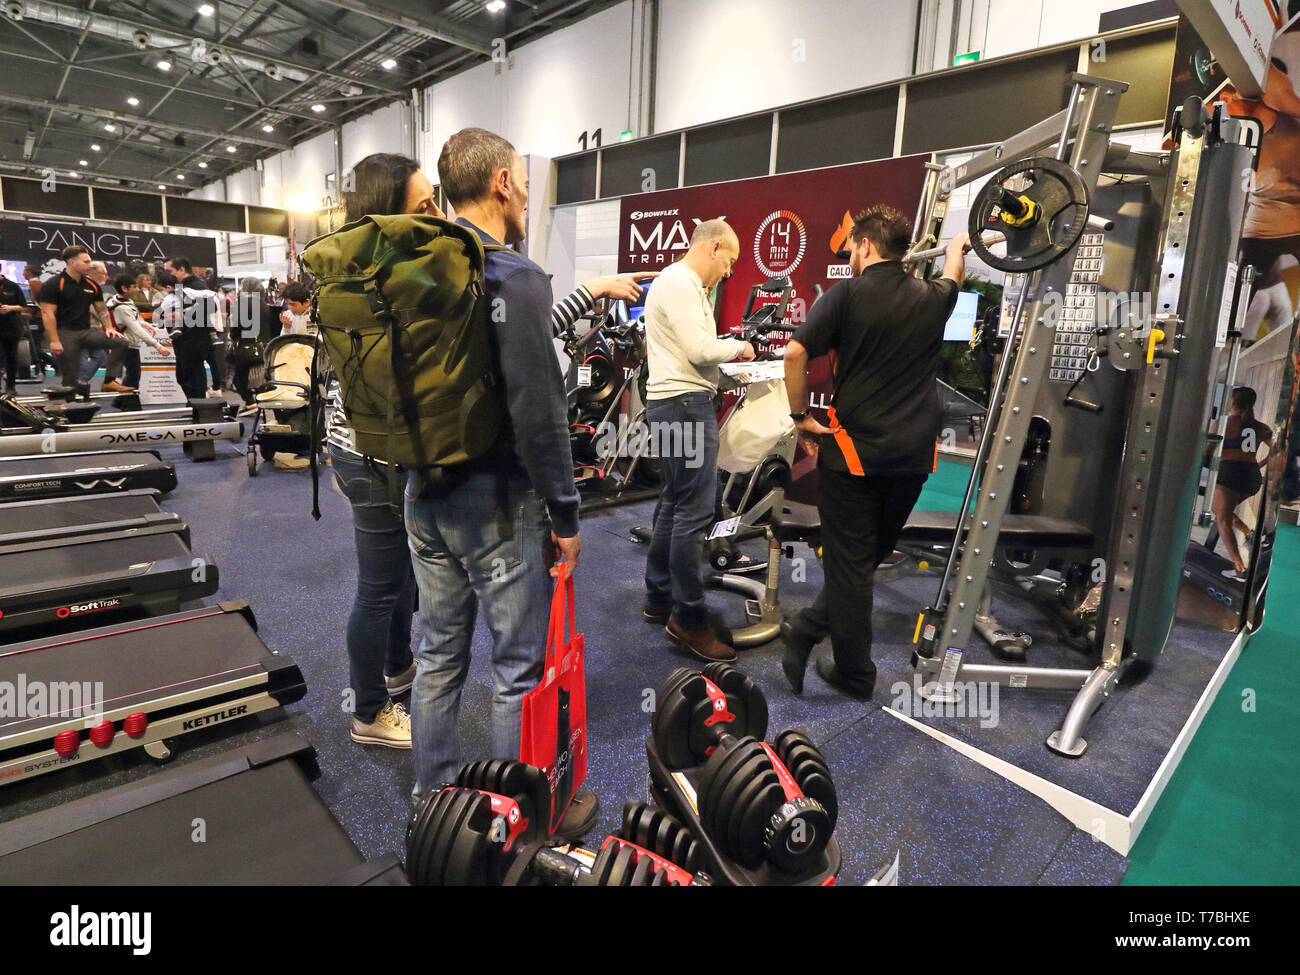 London uk th may state of the art gym products seen